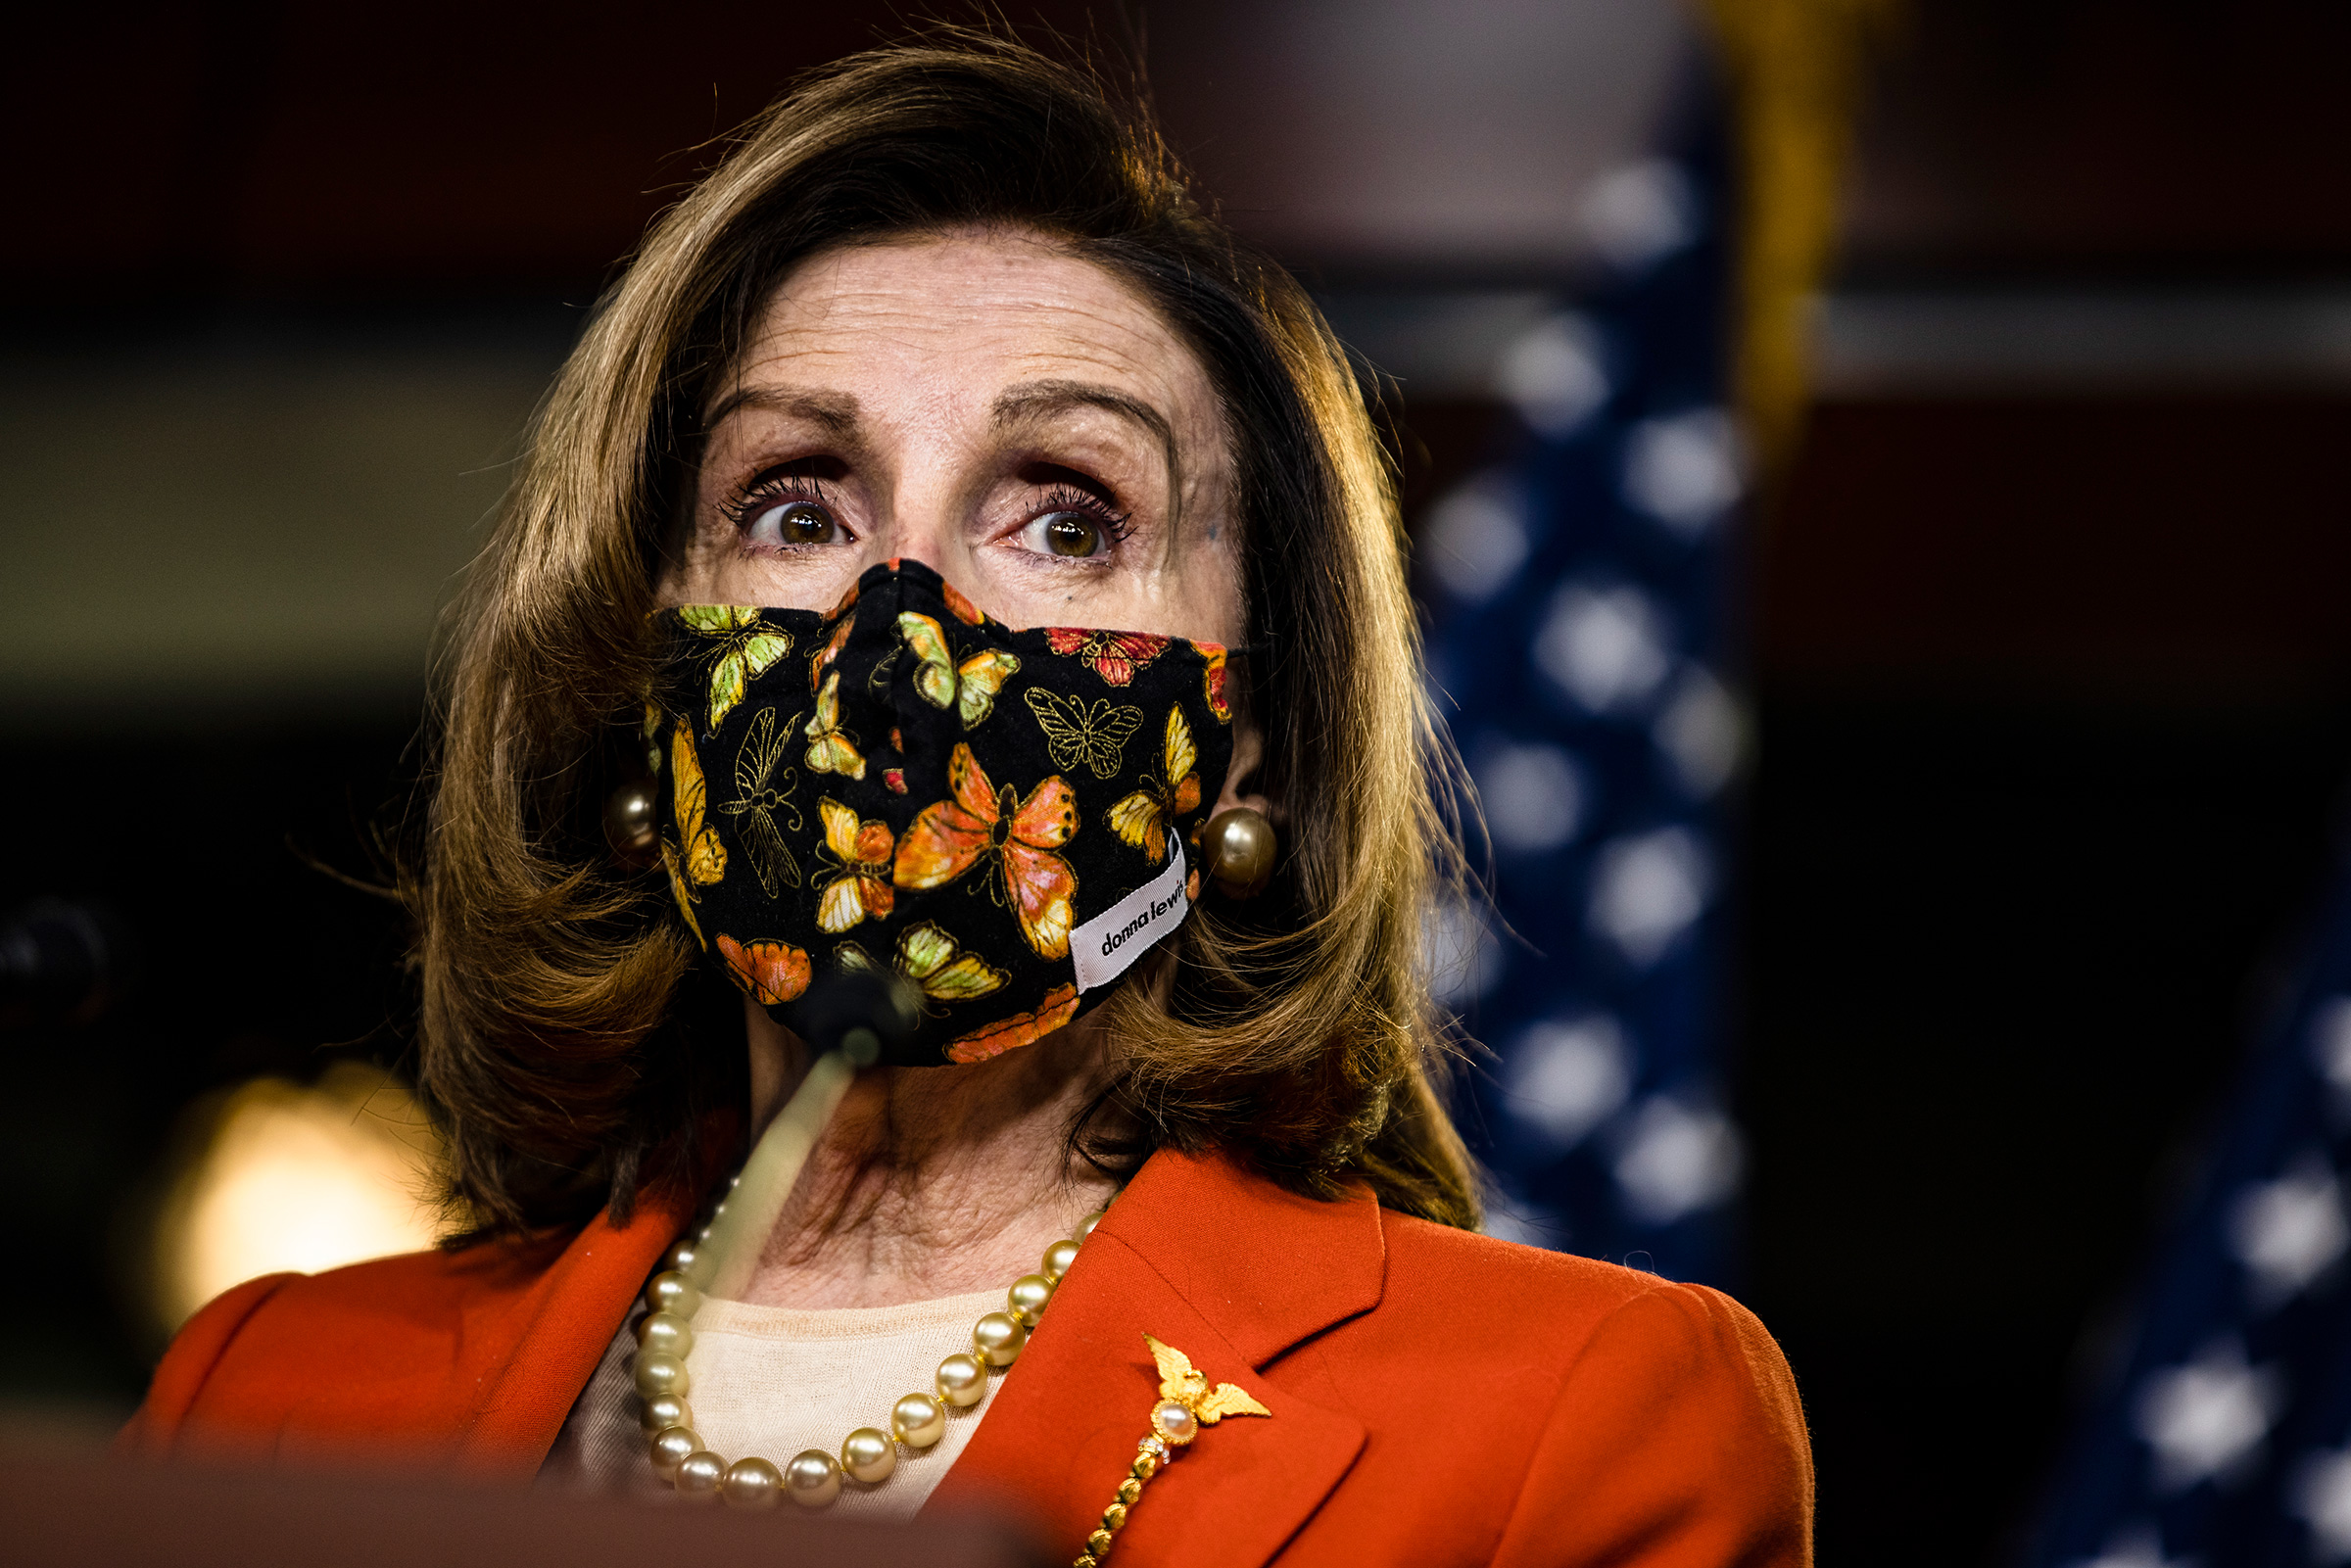 House Speaker Nancy Pelosi speaks during a press conference on January 15, in Washington, DC.